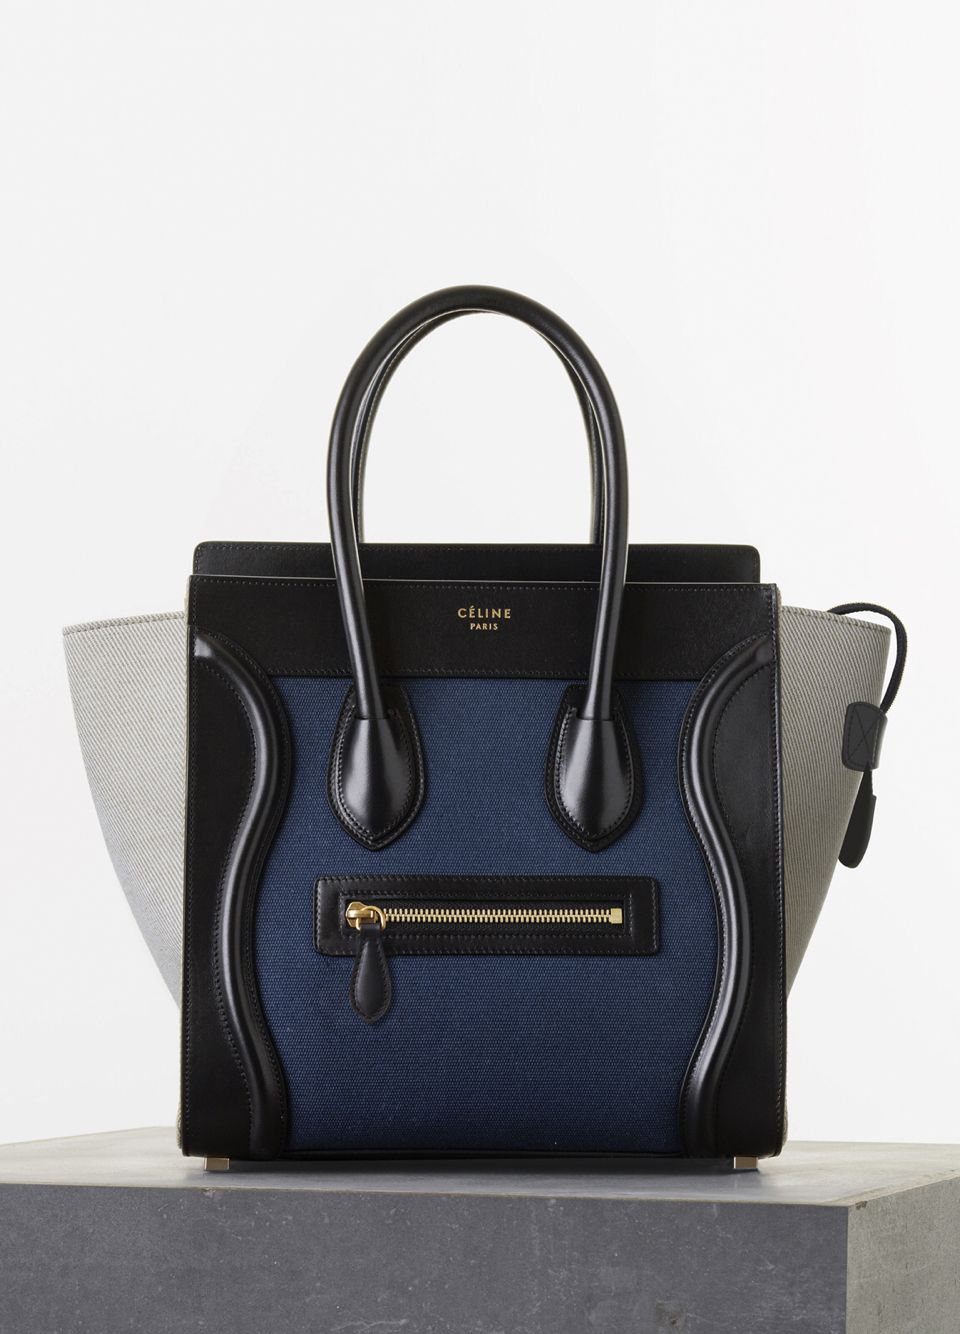 Céline Micro Luggage Handbag In Navy Multicolor Textile 2 350 This Colorblock Palette Is Definitely Straight Up My Alley Grey White Blue Black